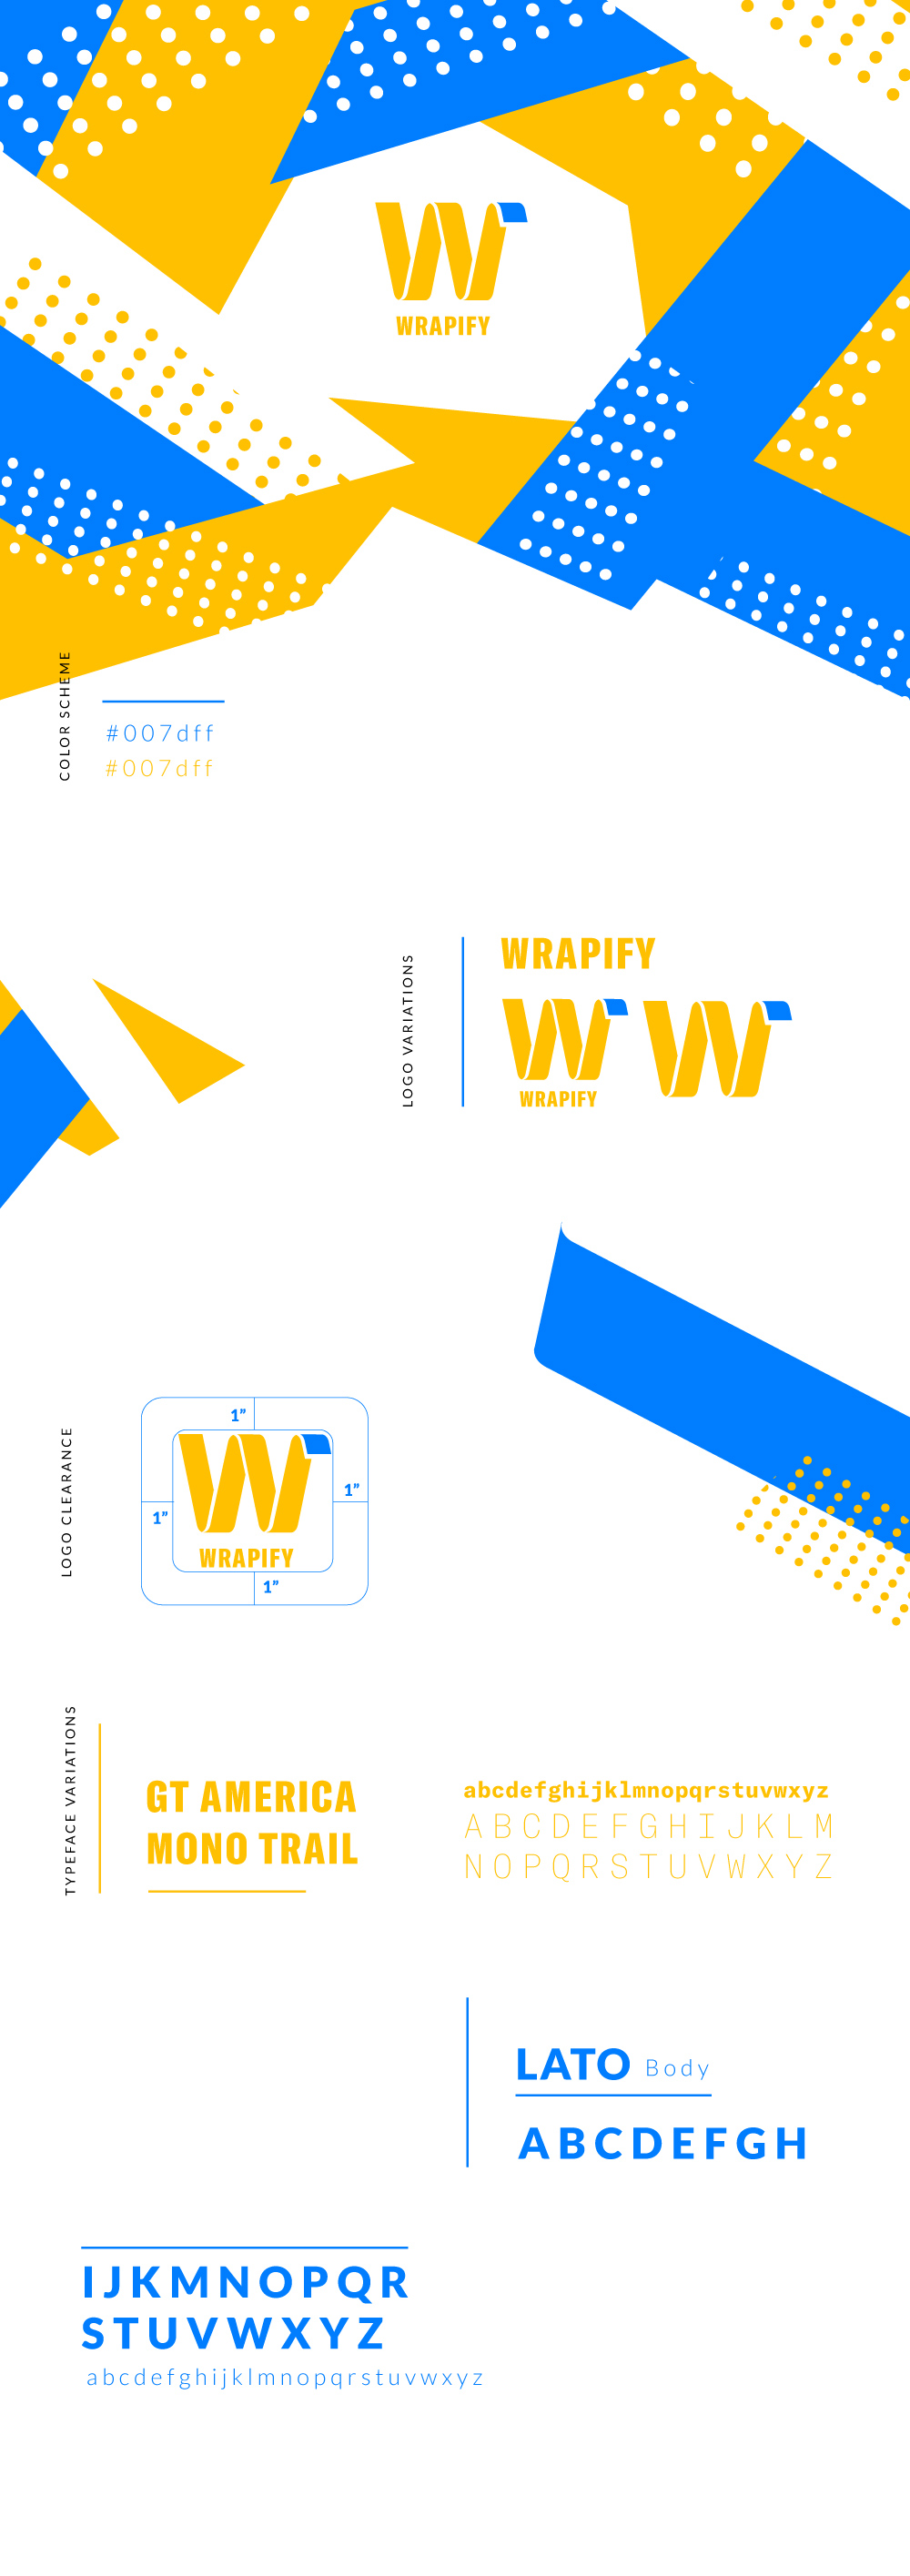 Wrapify-Brand-Guidelines.jpg